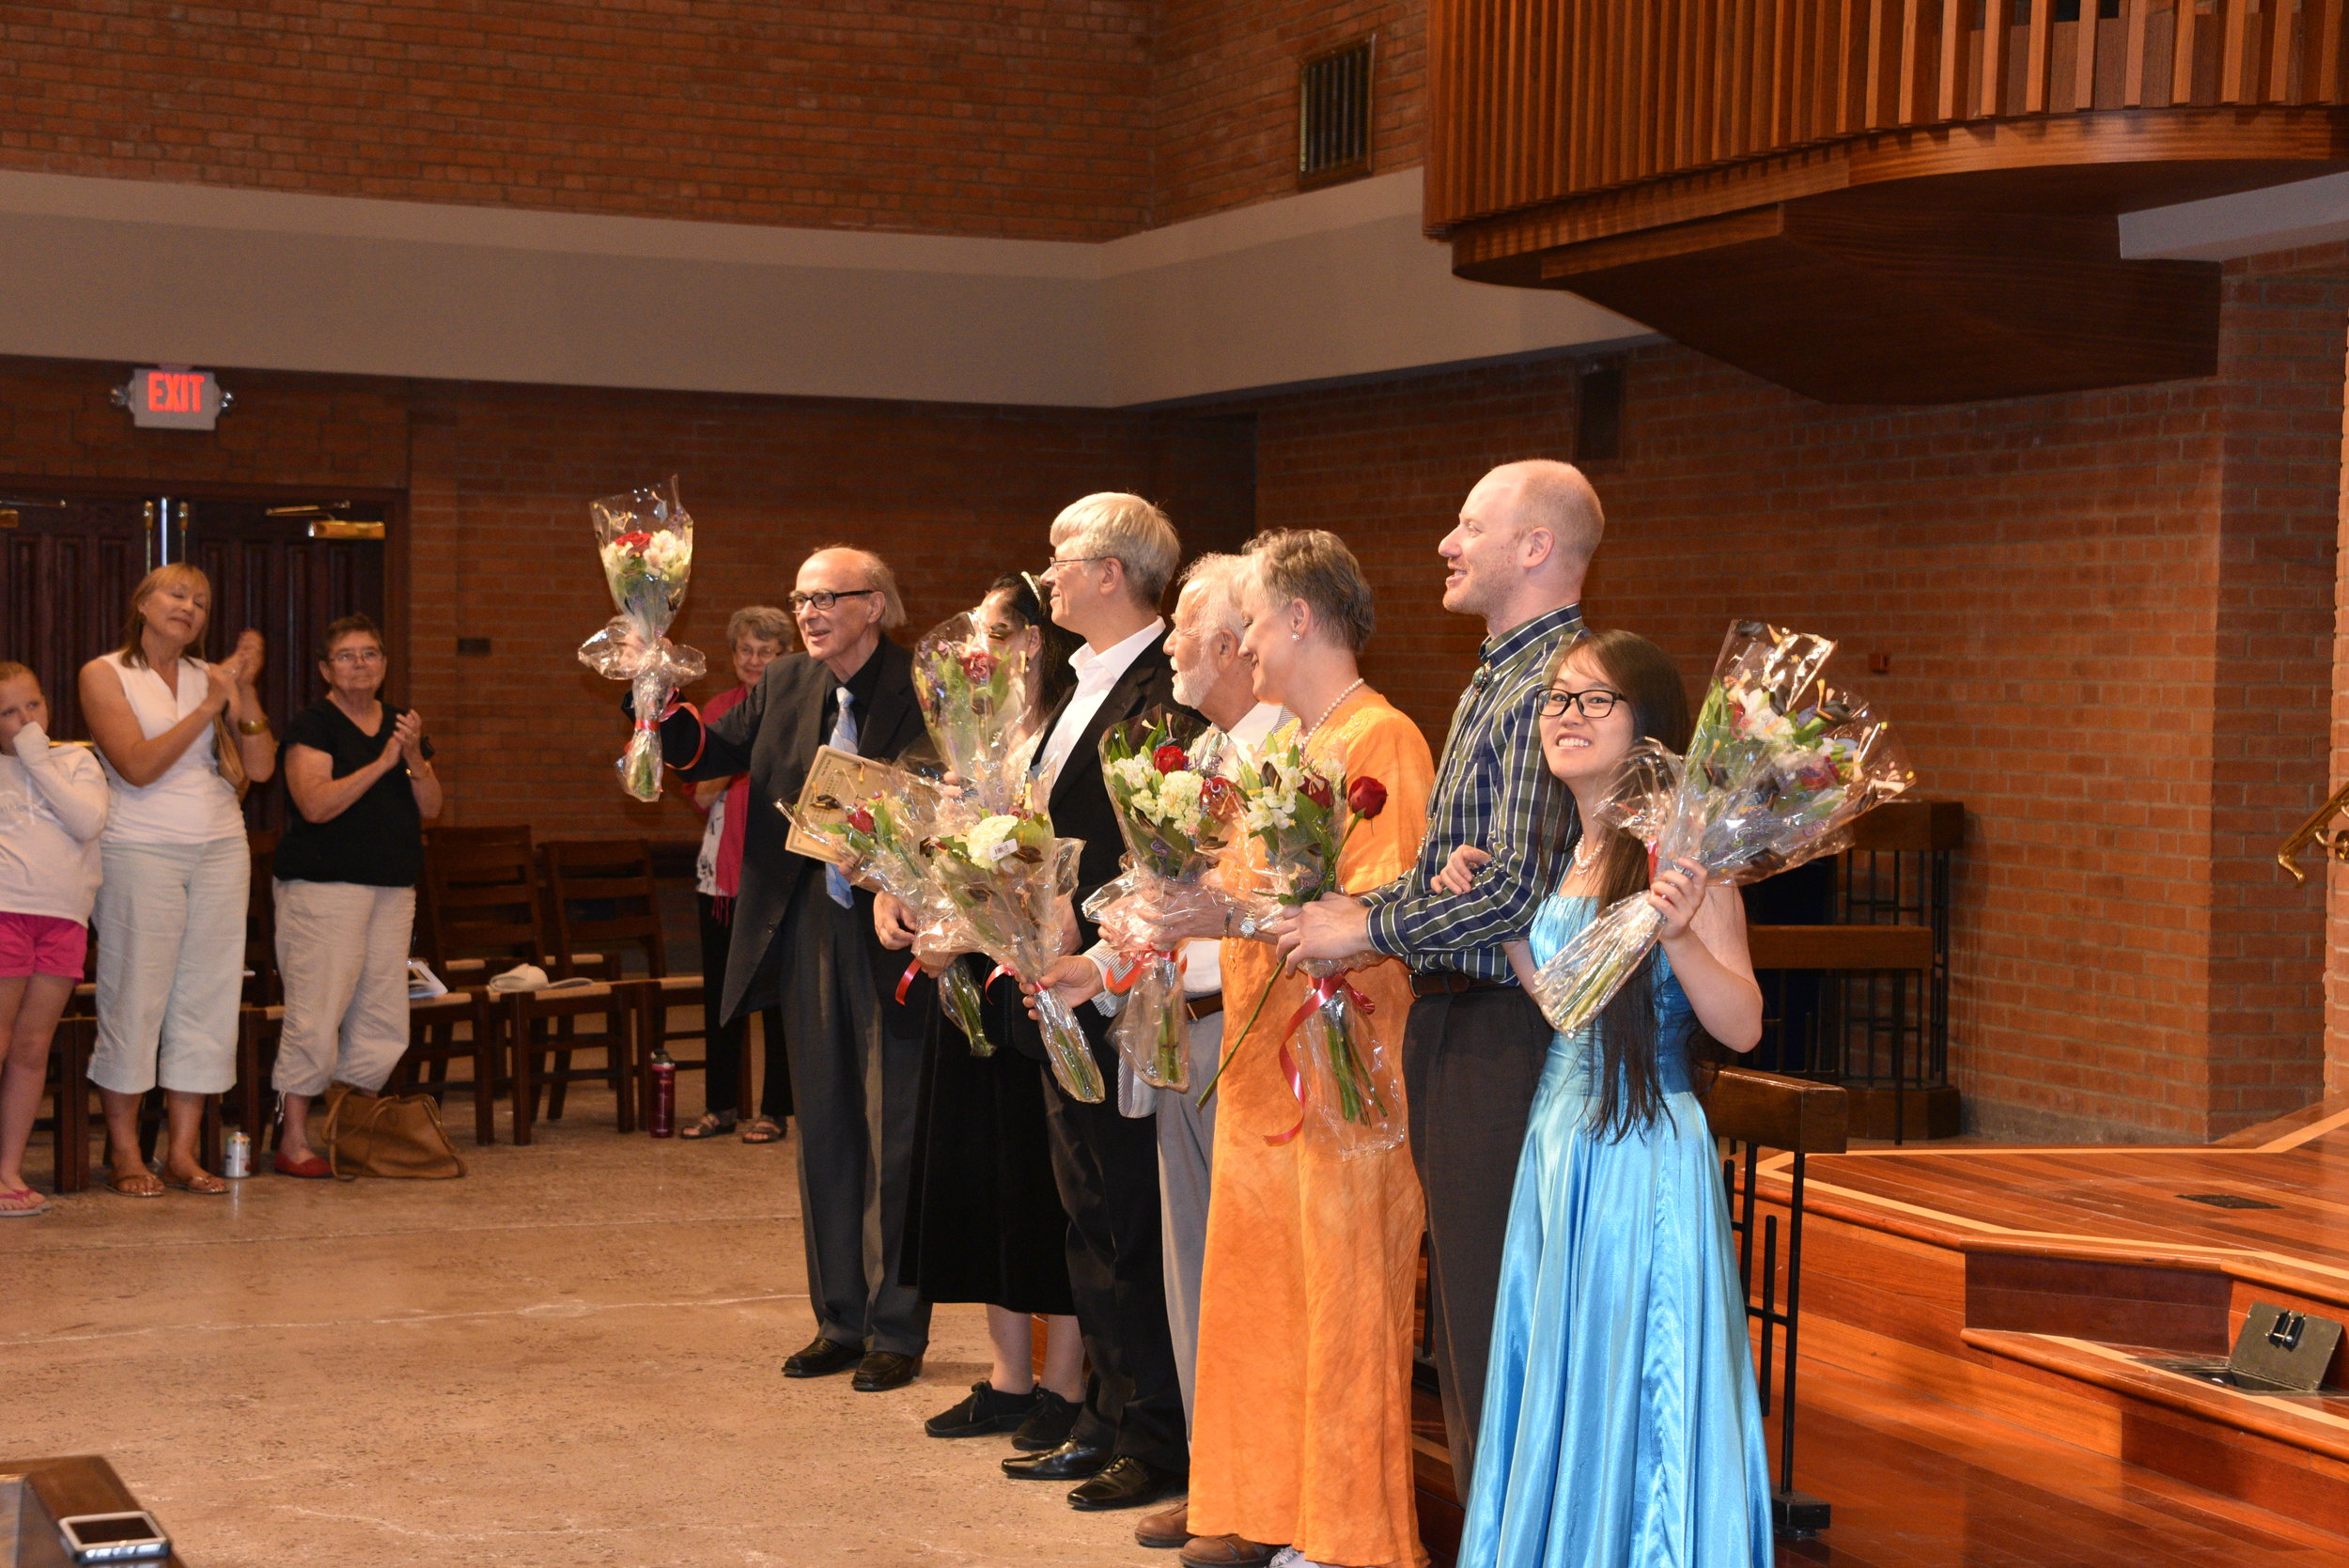 Faculty Accepting Flowers on Stage.JPG